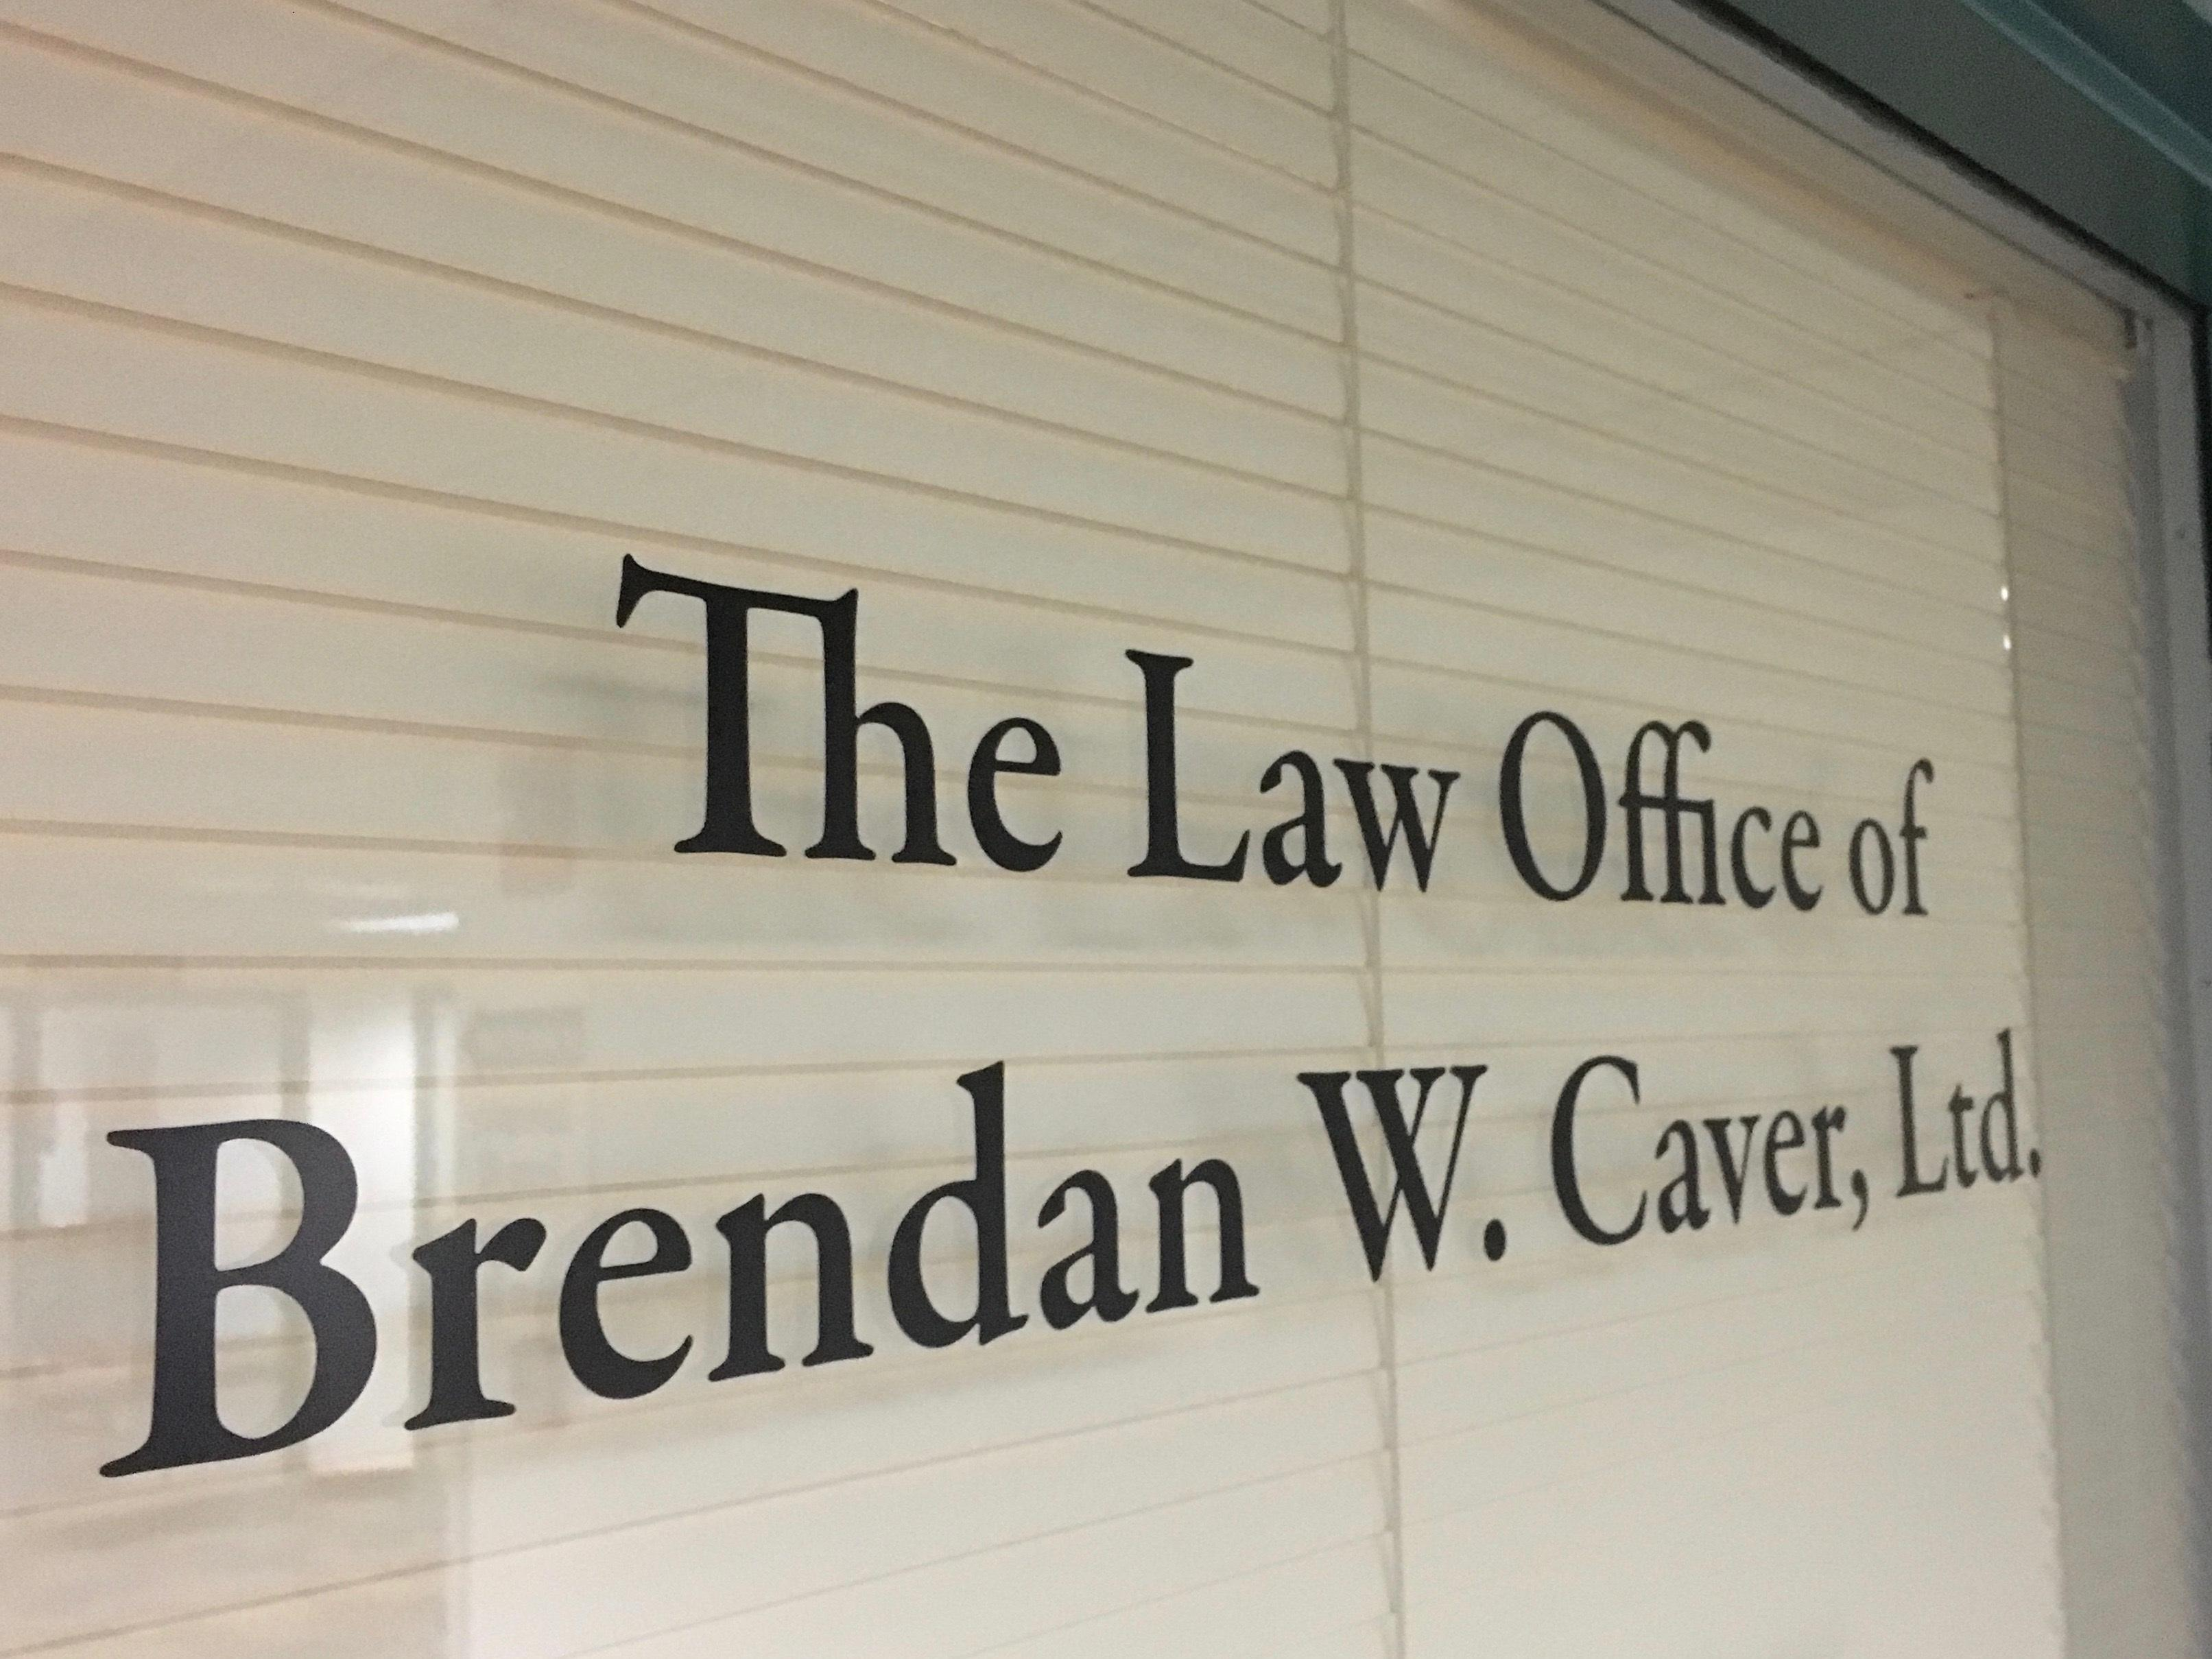 Law Office of Brendan W. Caver, Ltd.